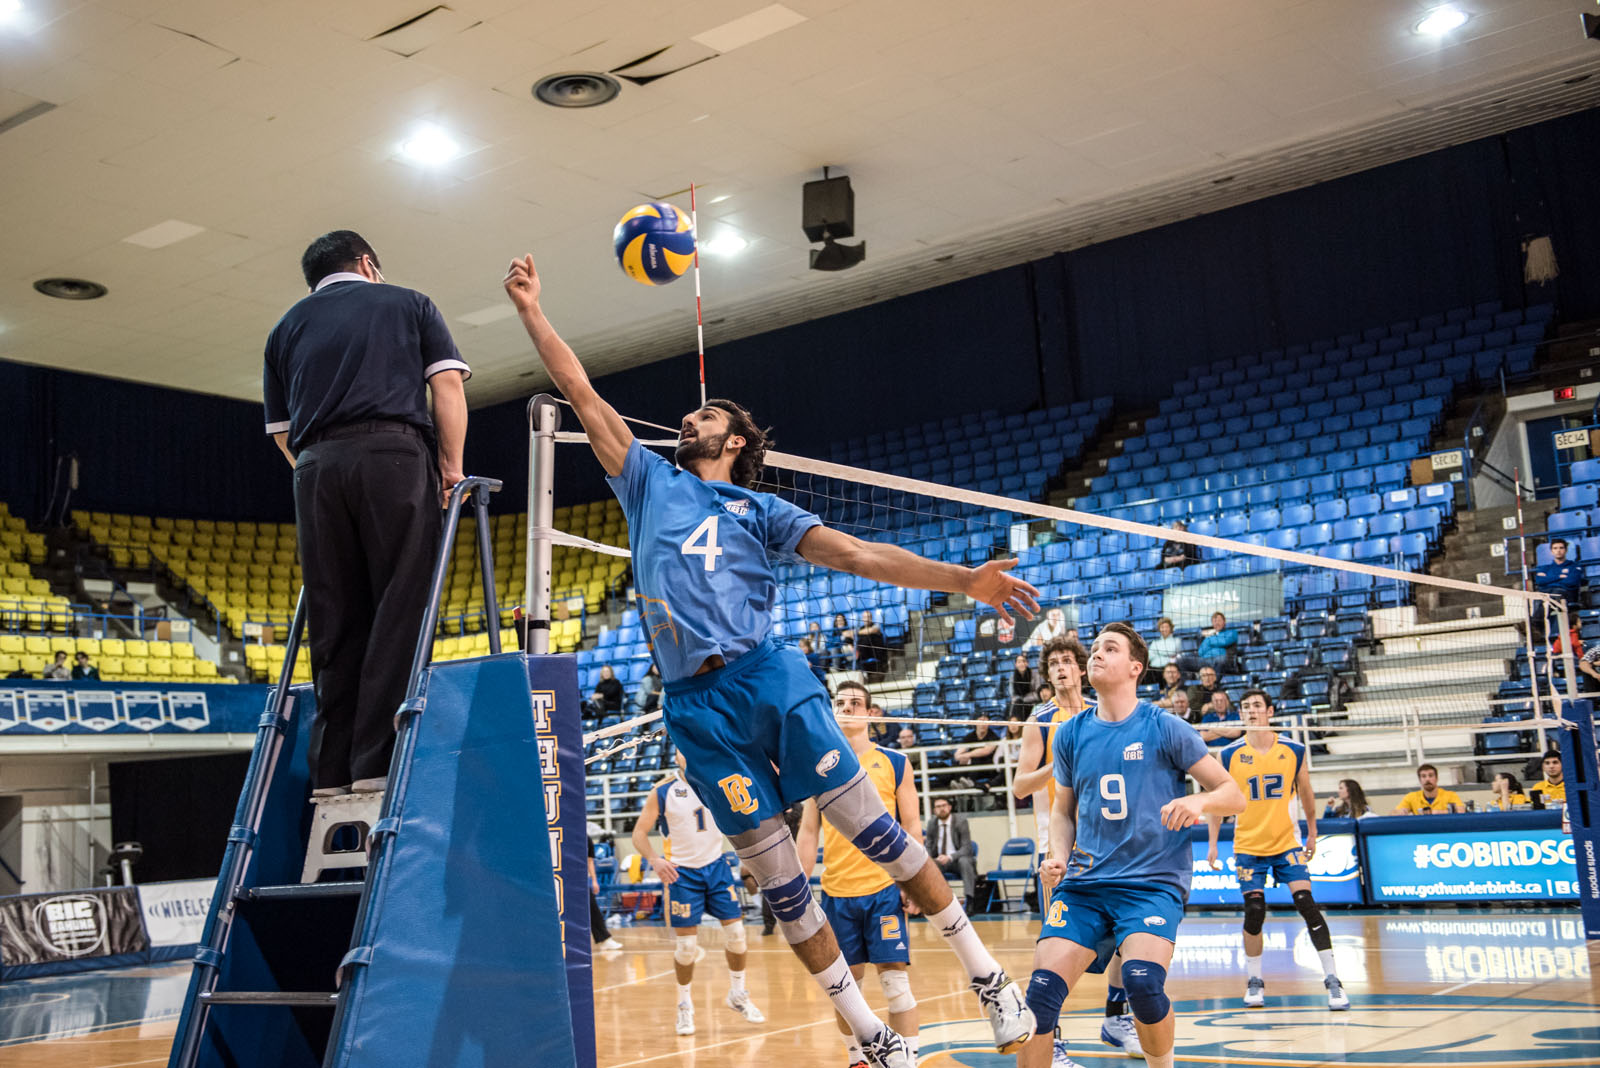 UBC's Irvan Brar gets a hand on the ball. He tallied 19 kills on Saturday.